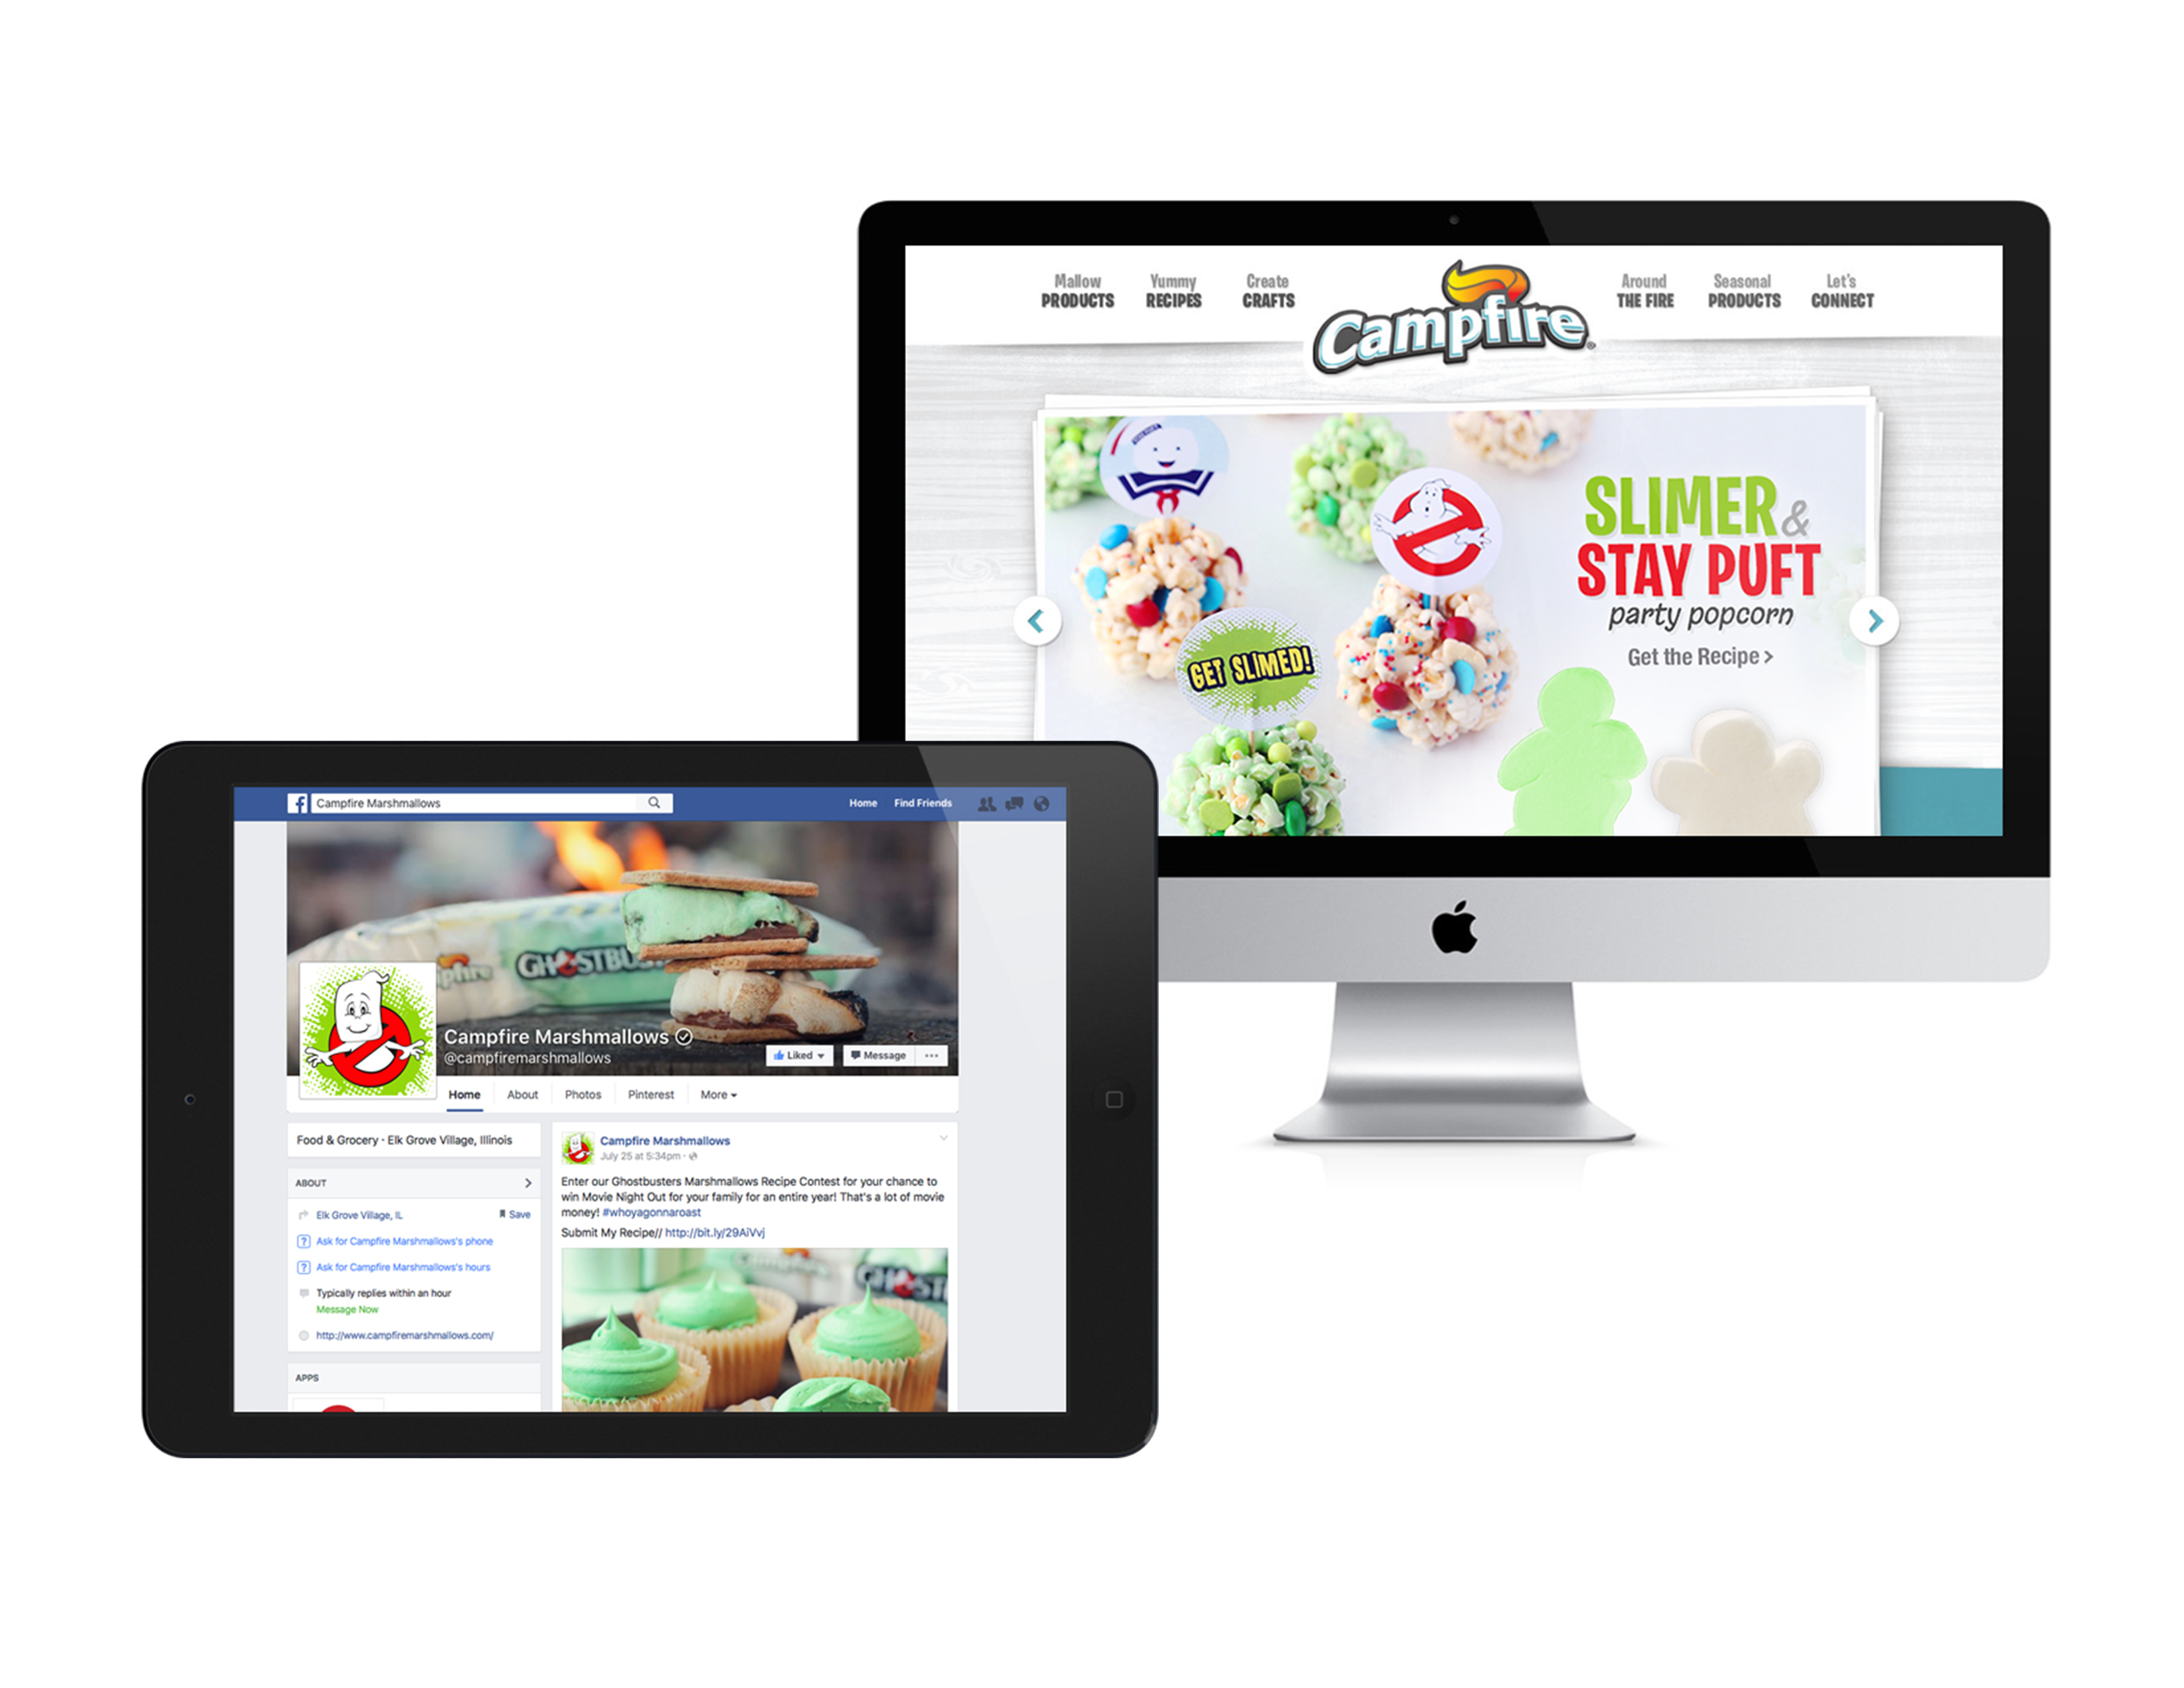 Campfire Ghostbusters website and Facebook example